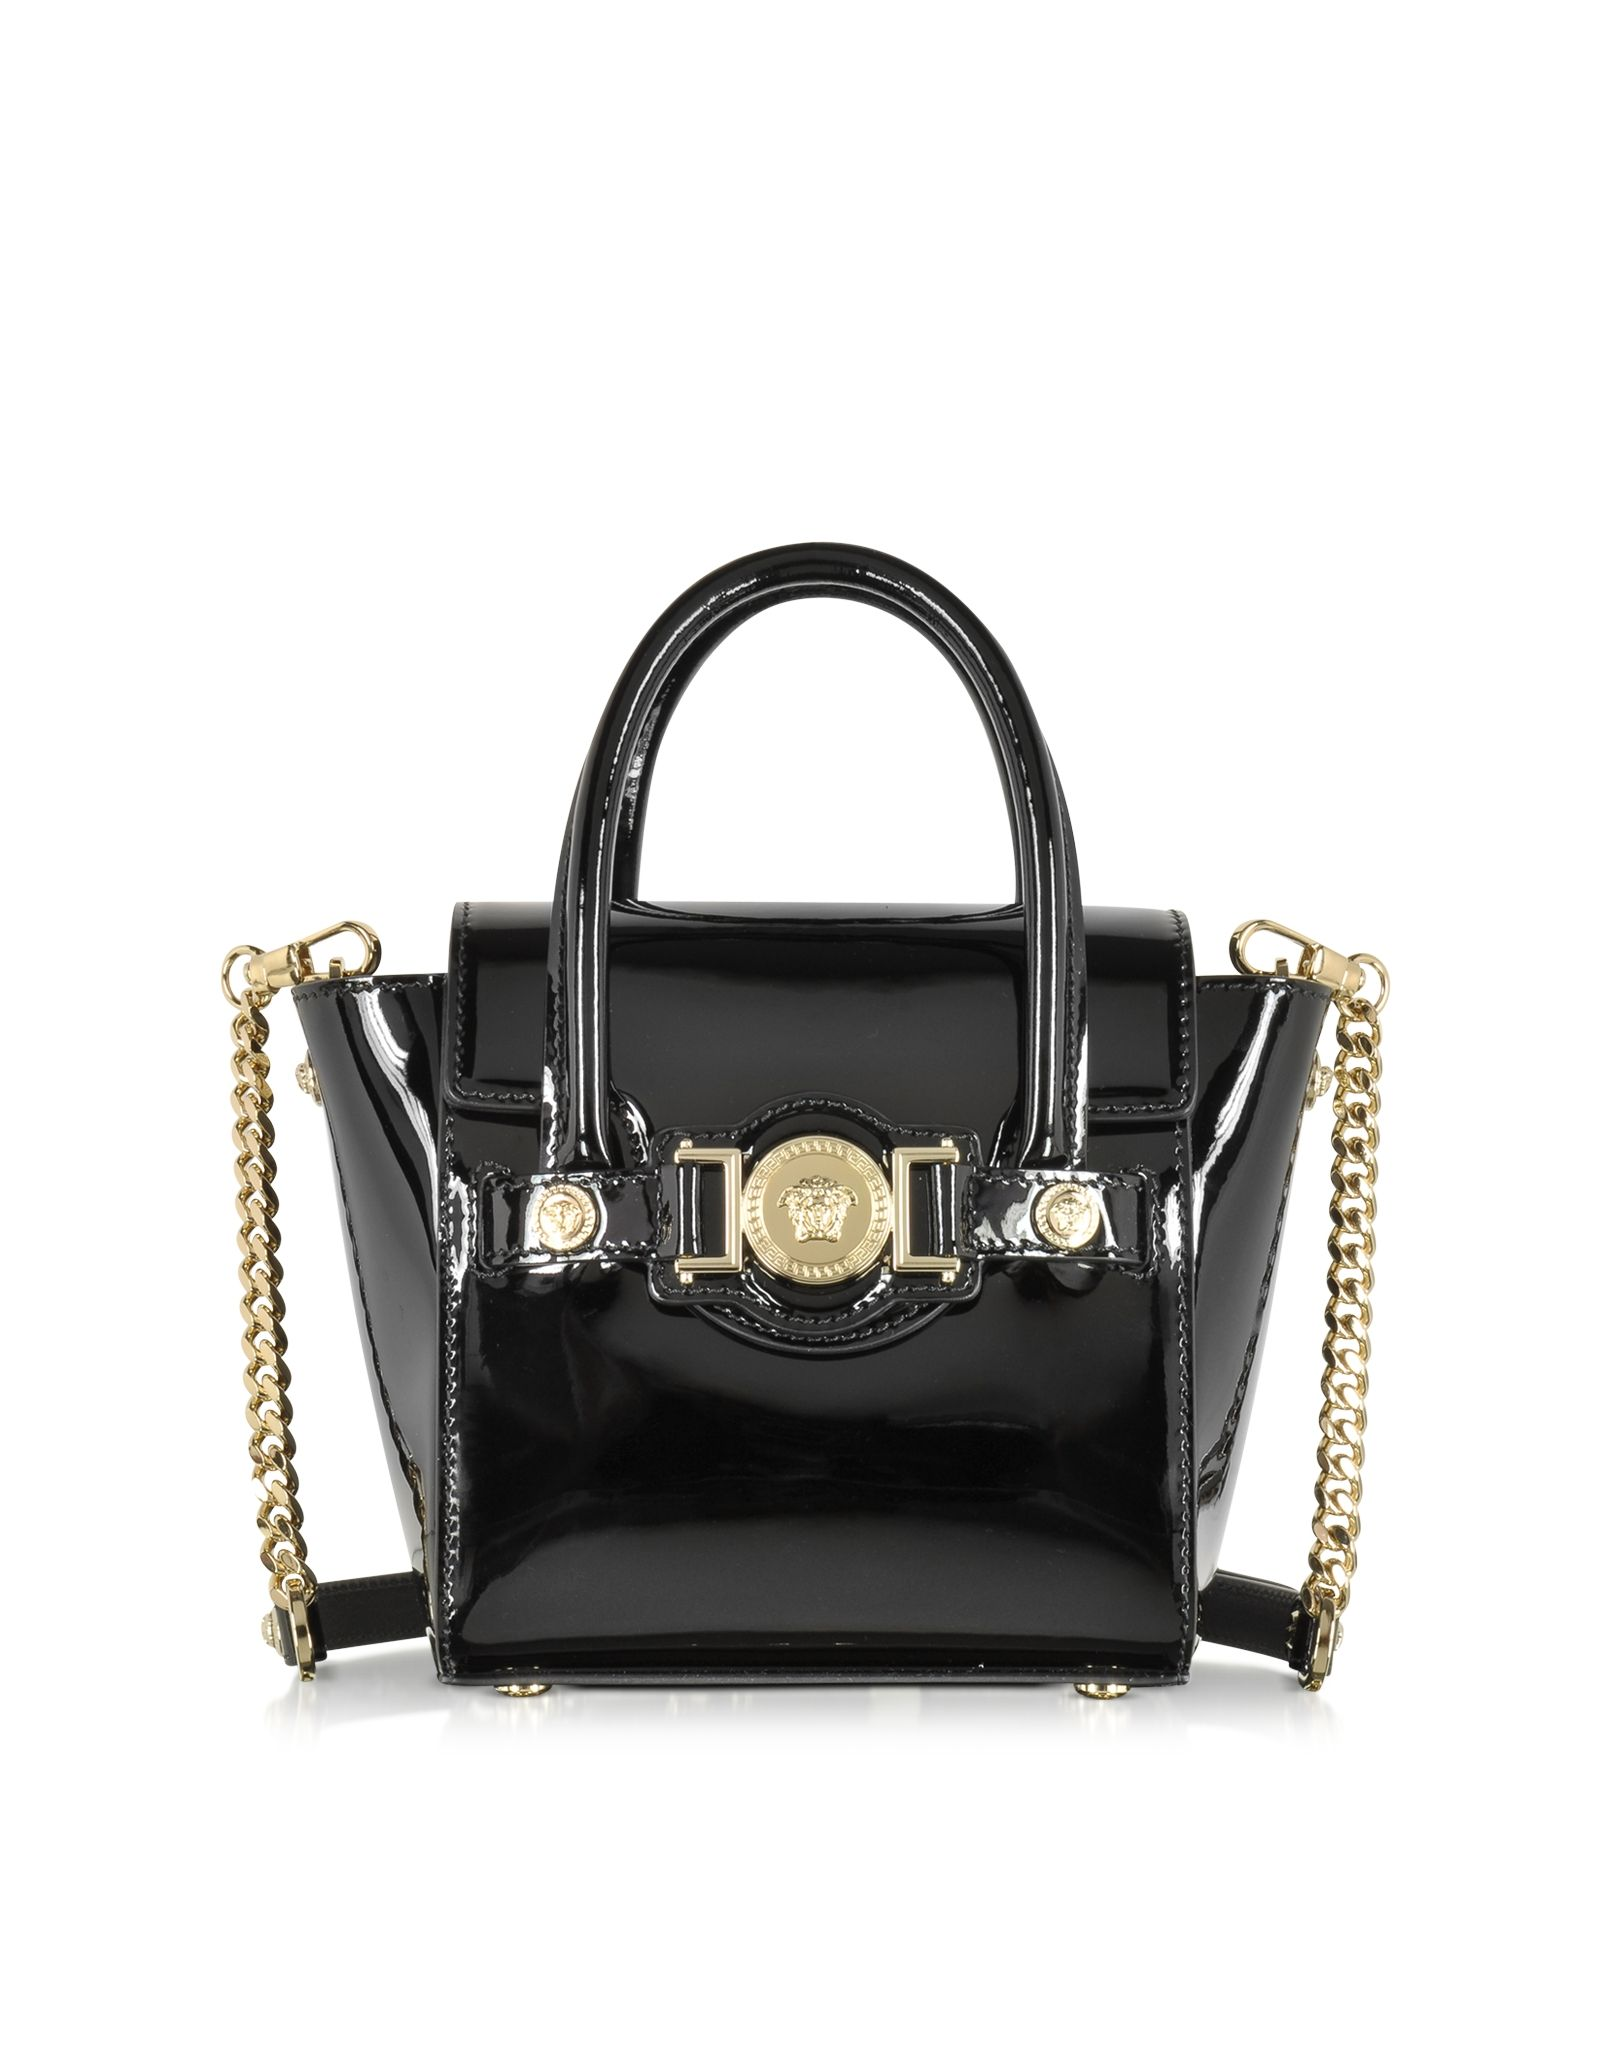 b45010f56fc2 Versace Black Patent Leather Signature Mini Bag at FORZIERI